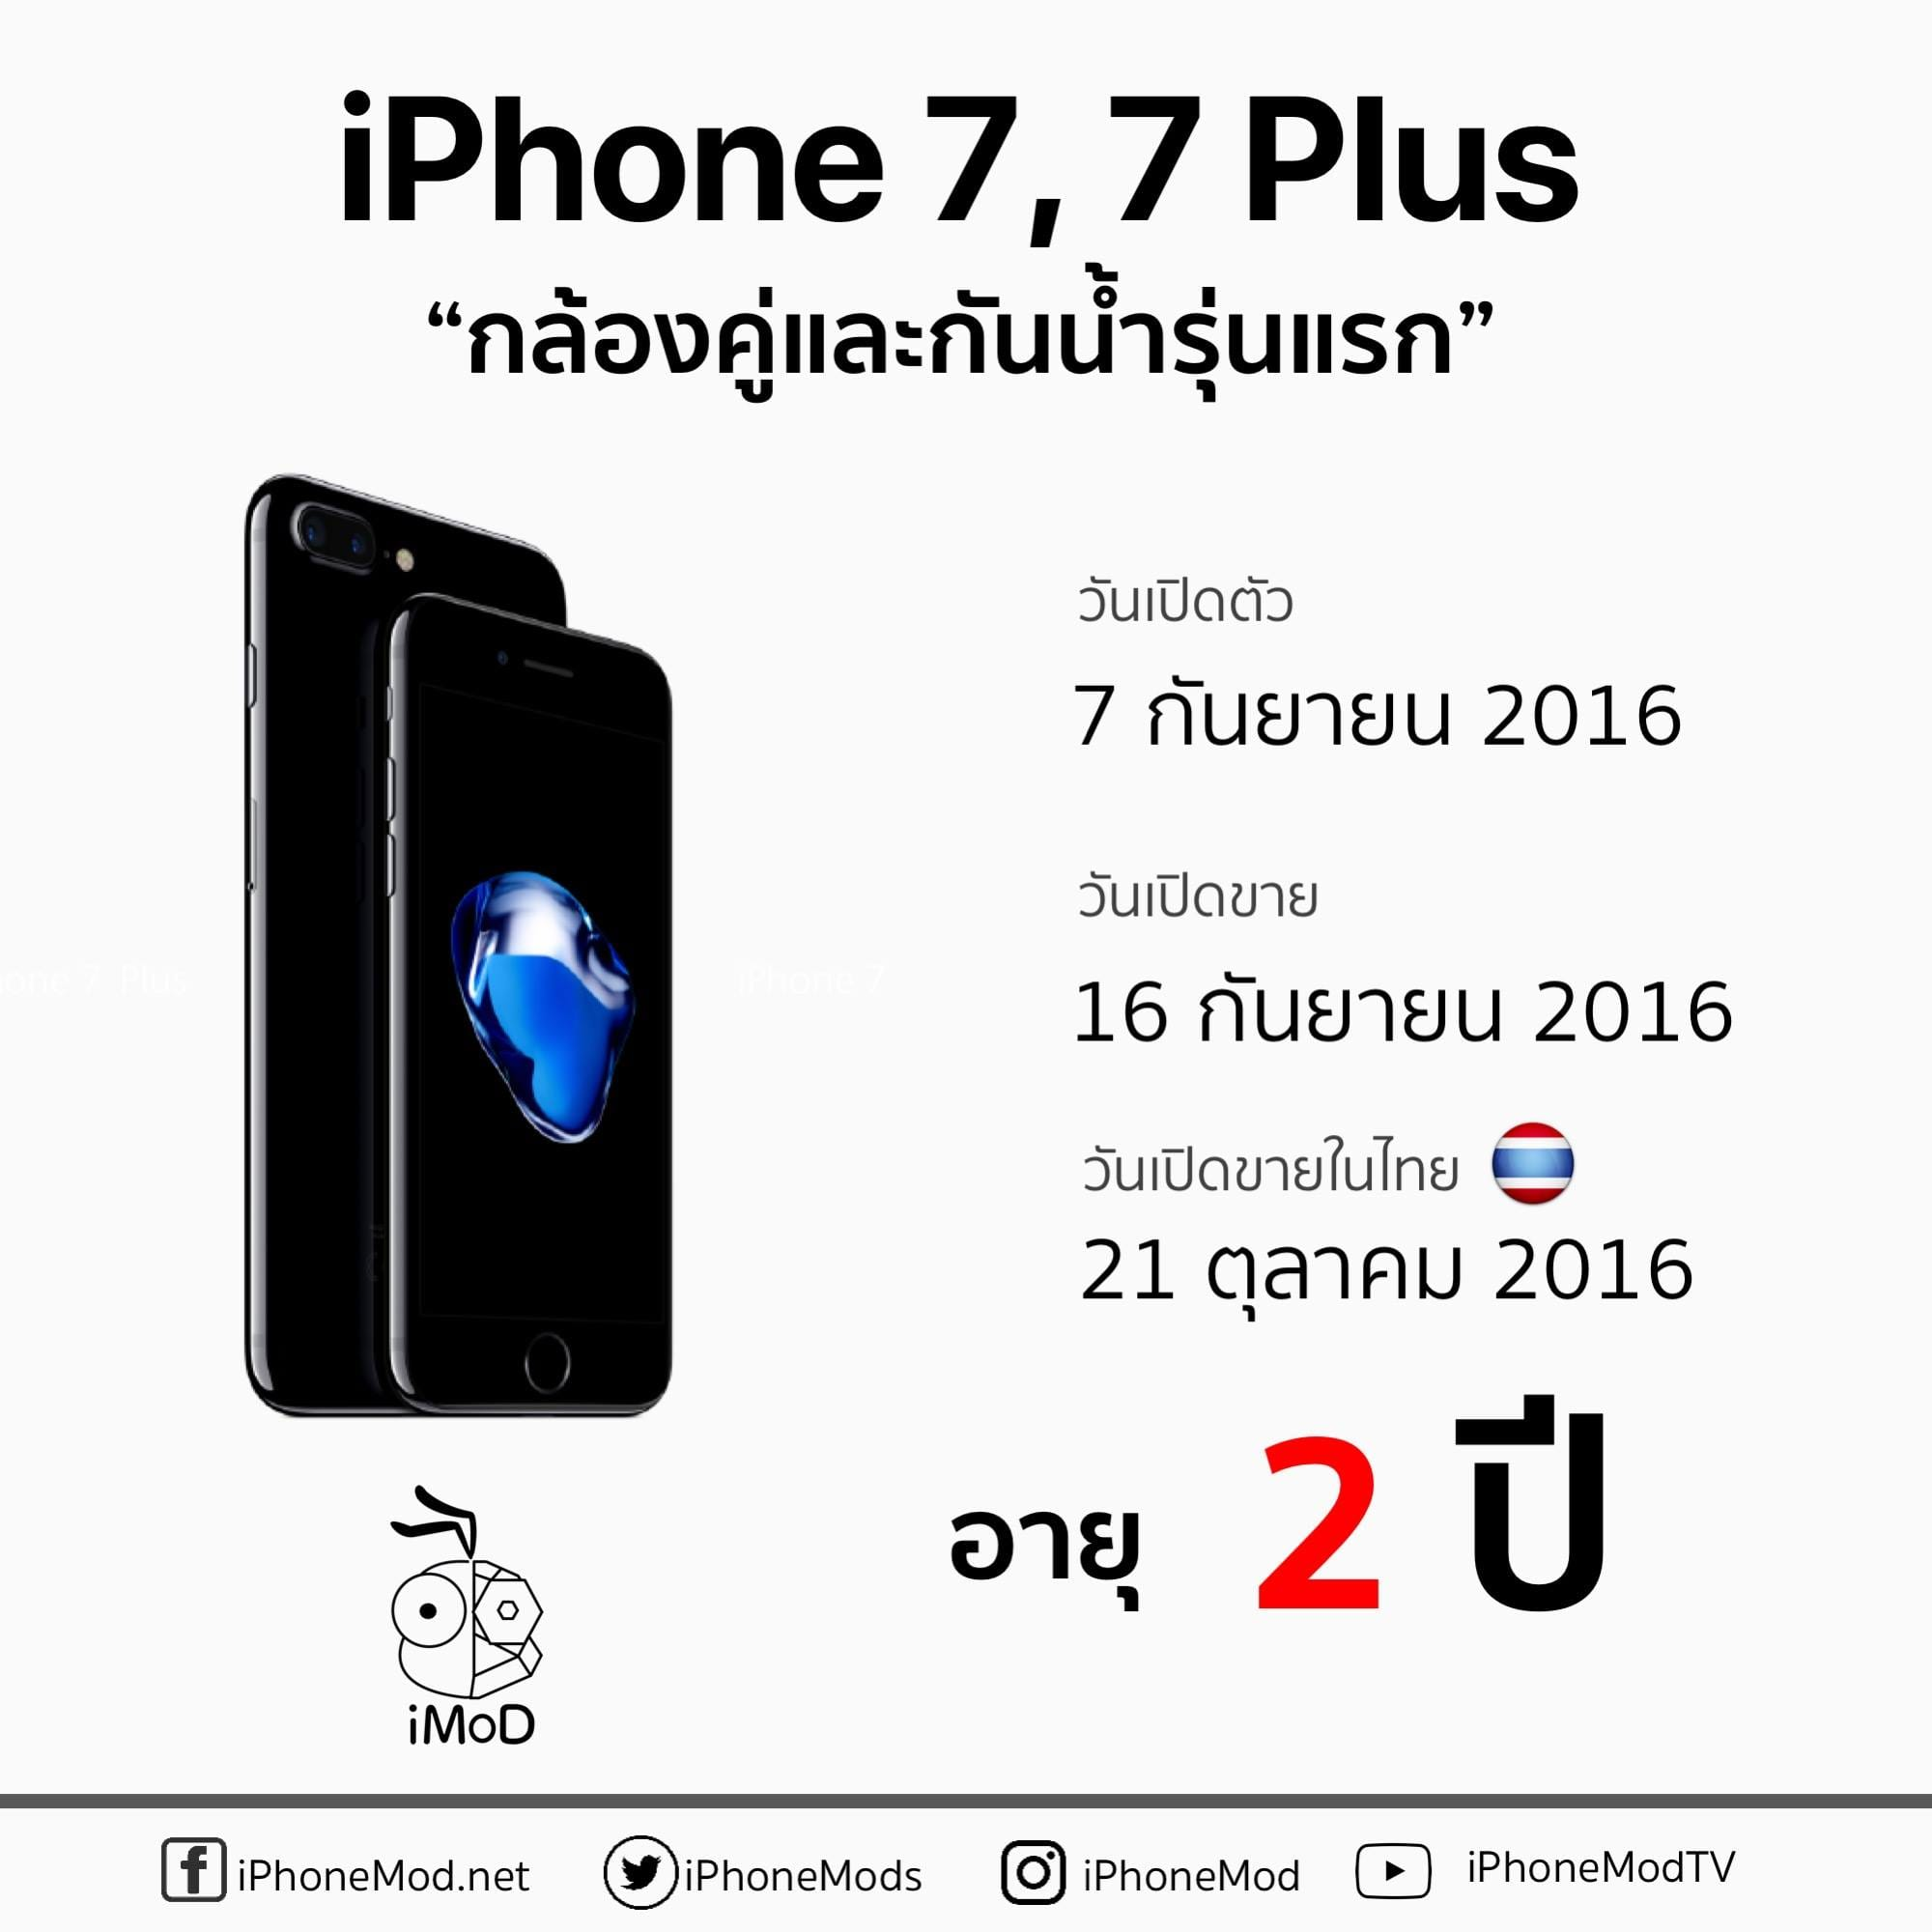 Iphone 7 Launch Thailand